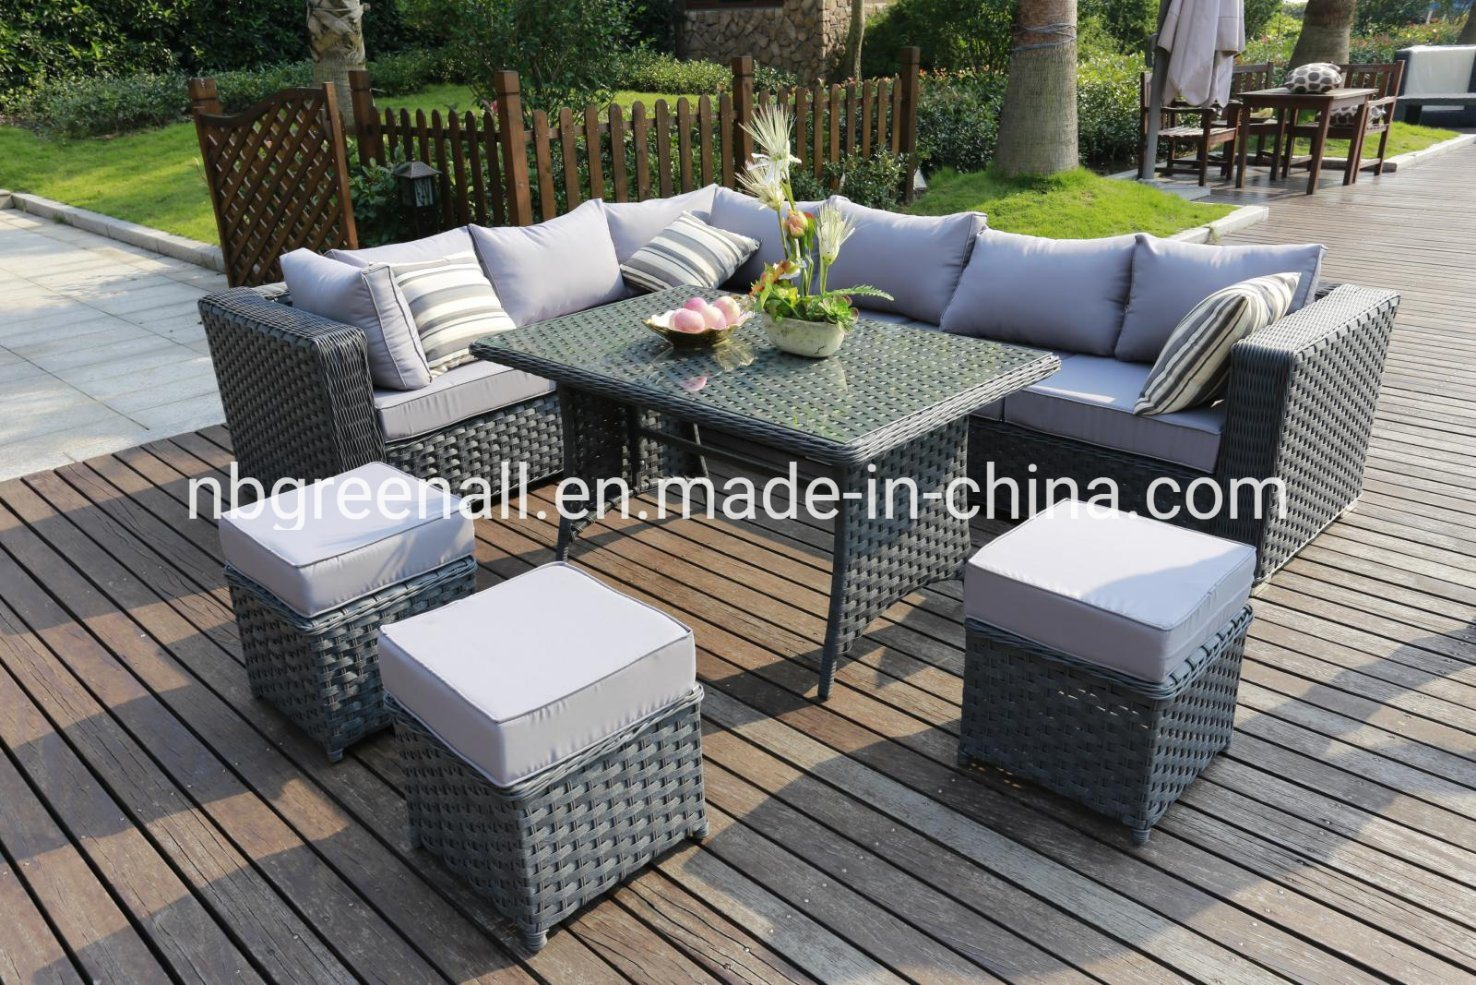 China Flat Round Rattan Mix Modern Outdoor Rattan Wicker Sofa Leisure Garden Furniture China Sofa Garden Furniture Outdoor Furniture Sofa